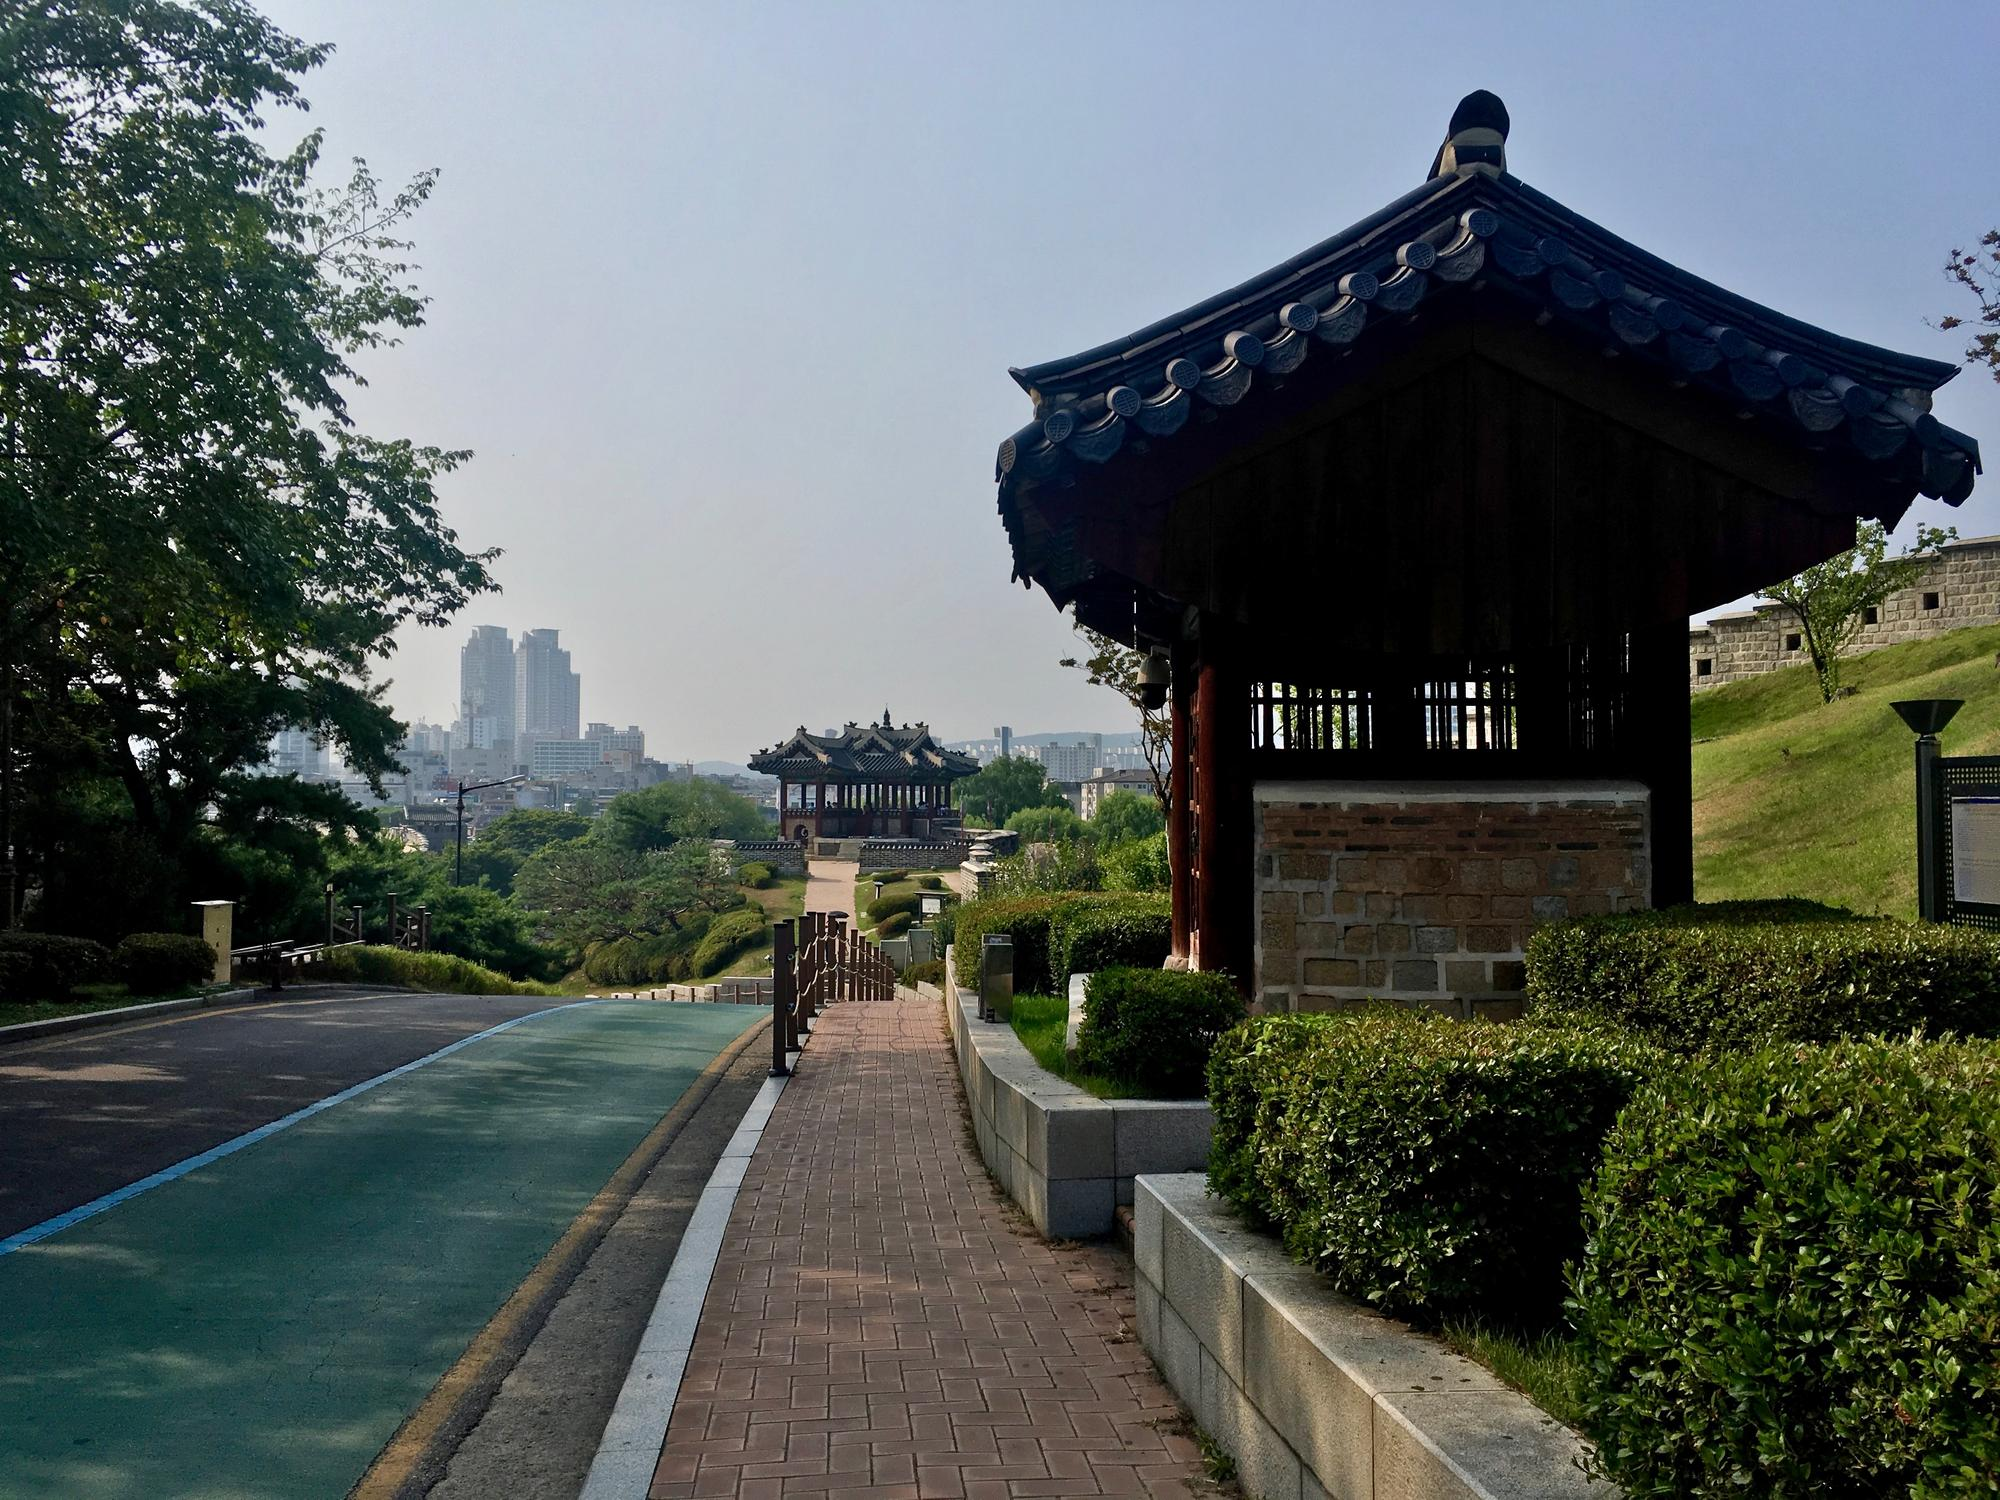 🇰🇷 Suwon, South Korea, july 2019.